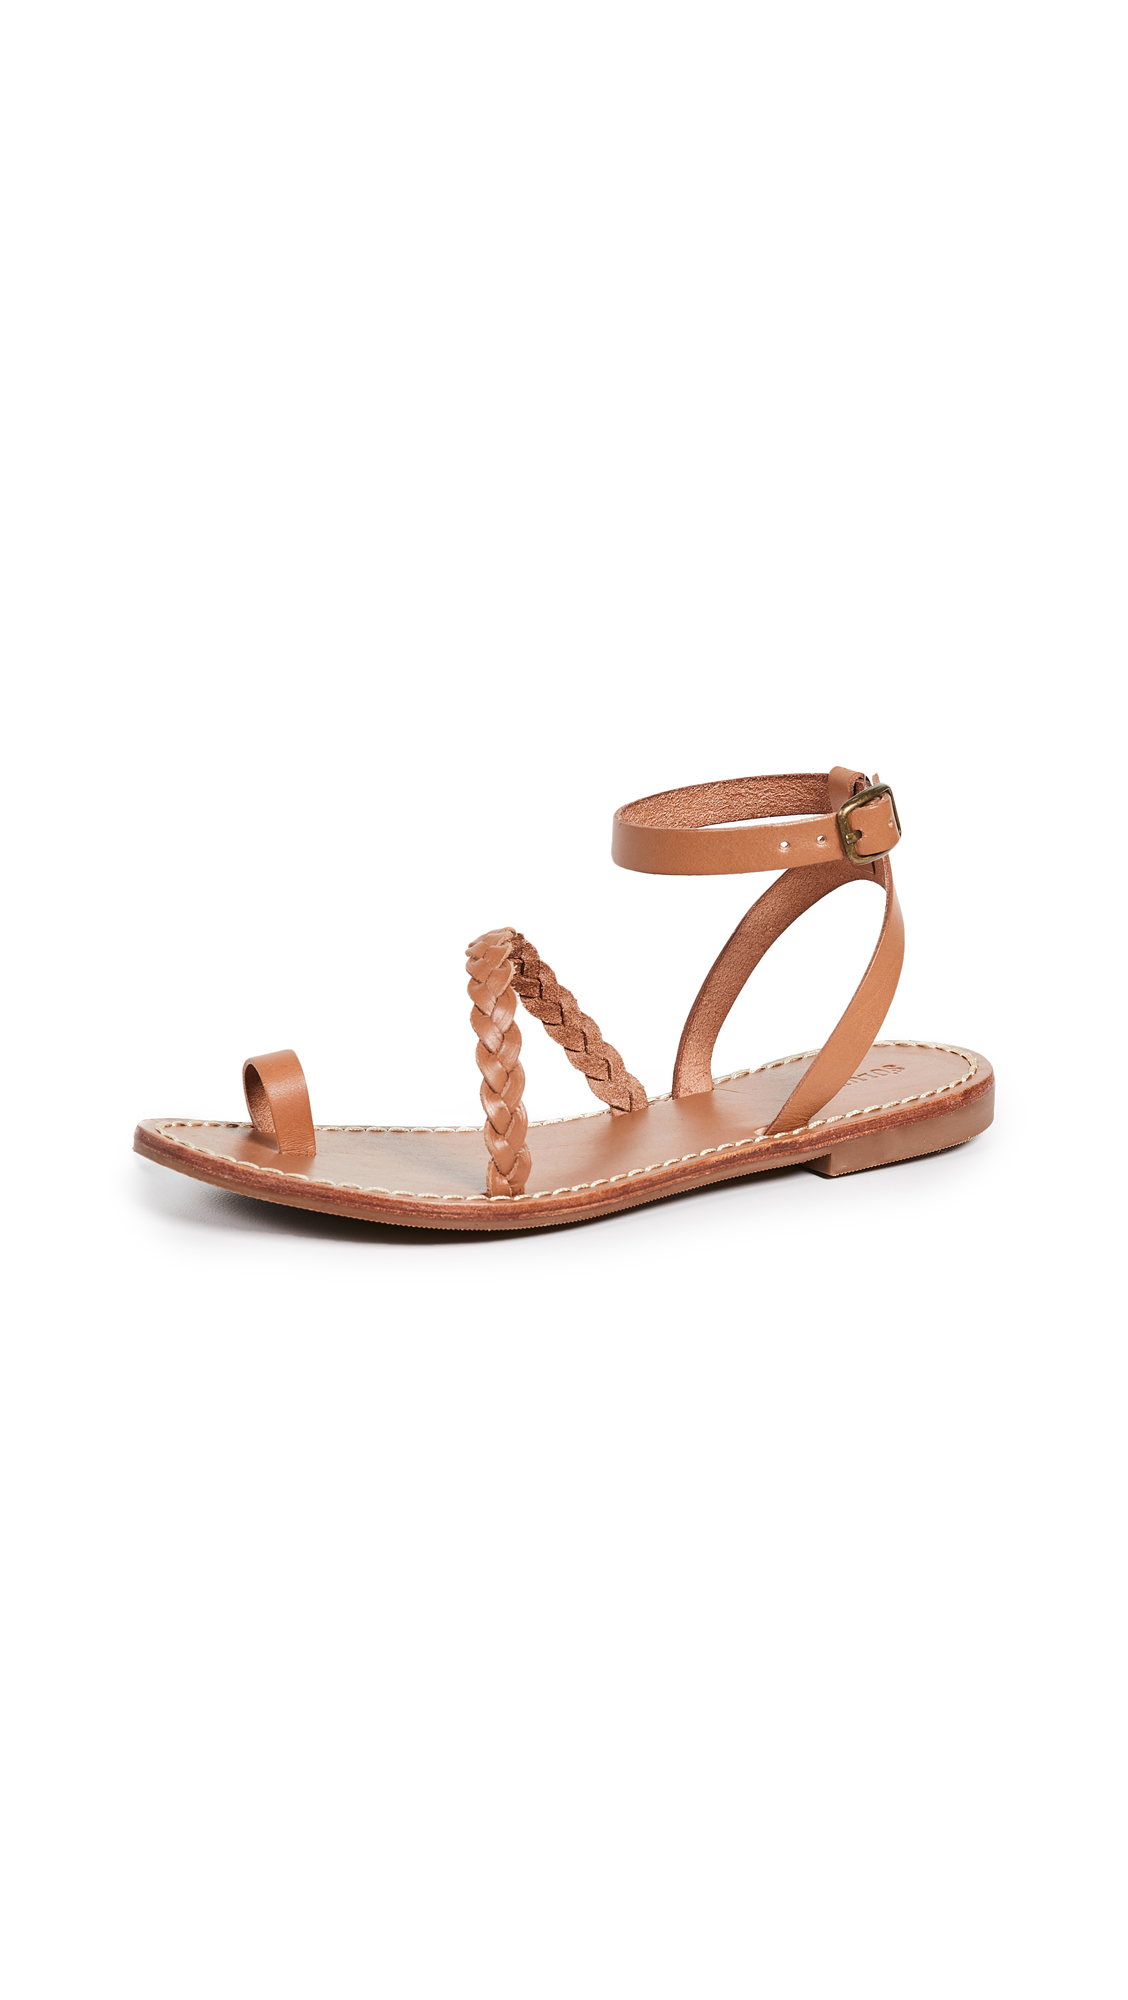 Soludos Madrid Strappy Braided Sandals – 30% Off Sale